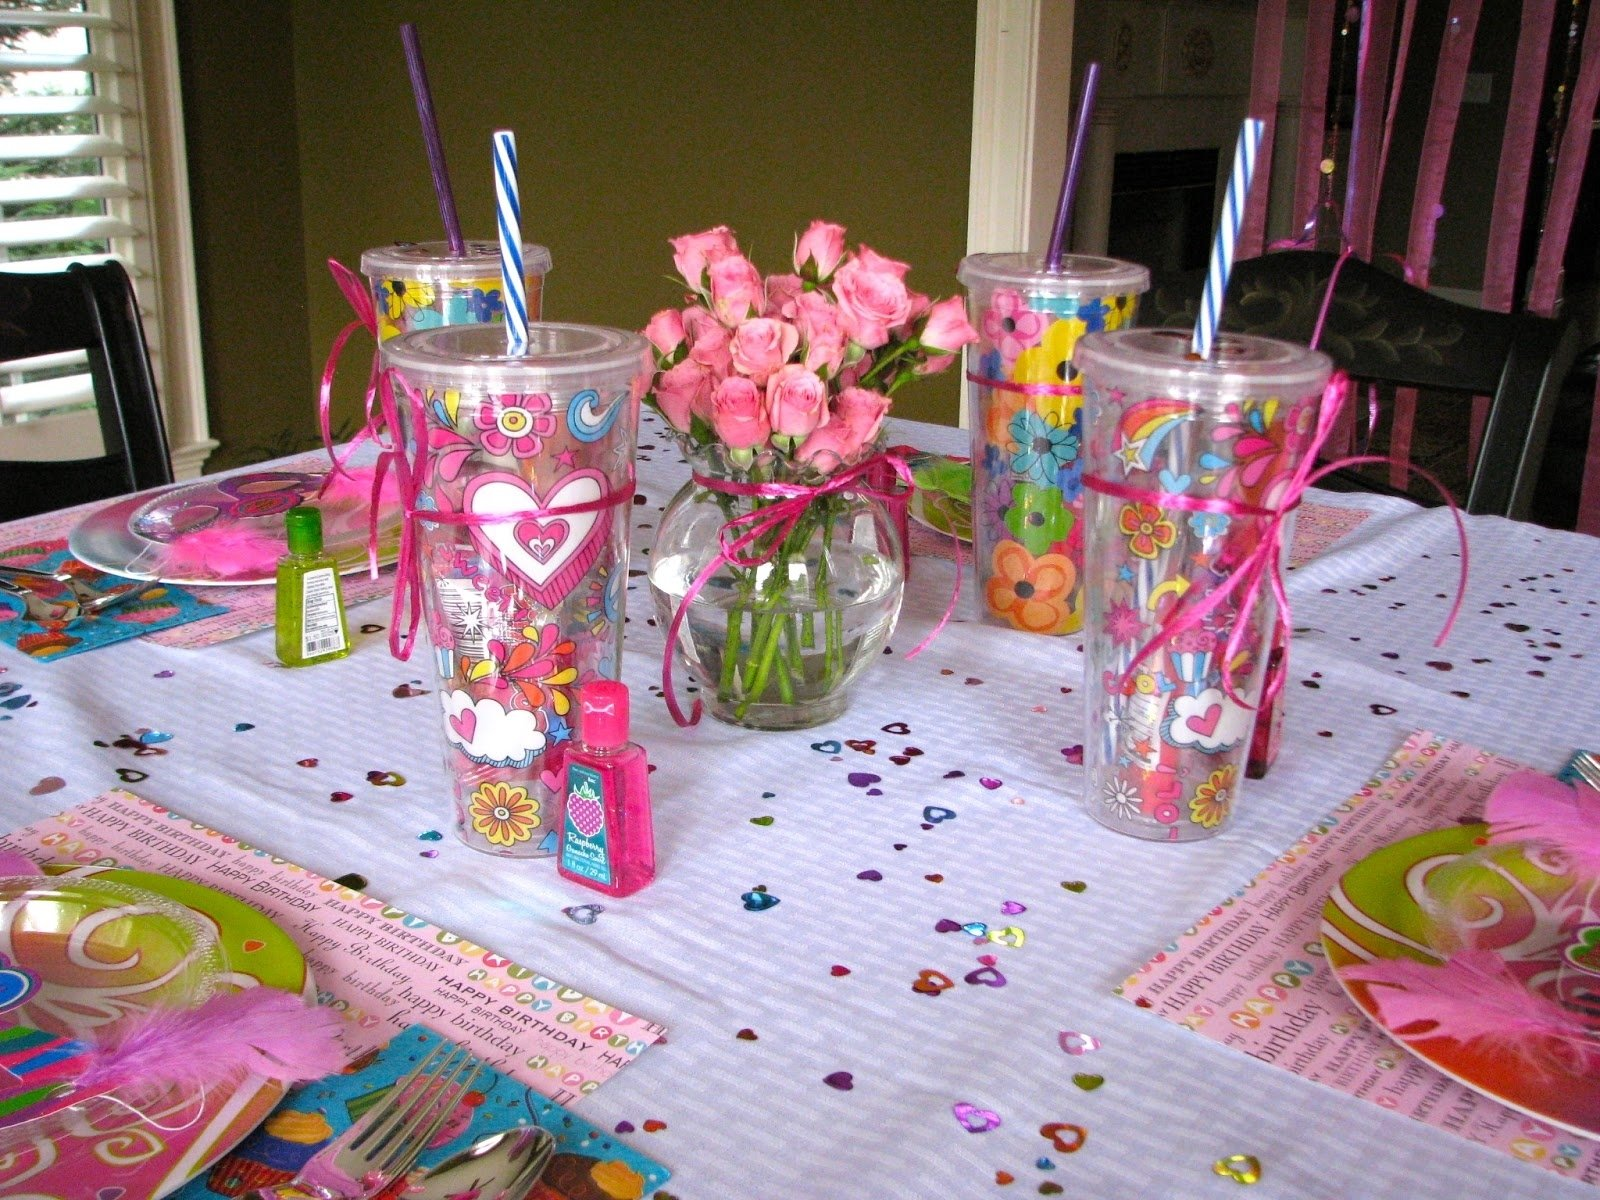 10 Stylish 2 Year Old Birthday Party Ideas Girl homemadeville your place for homemade inspiration girls birthday 2 2020